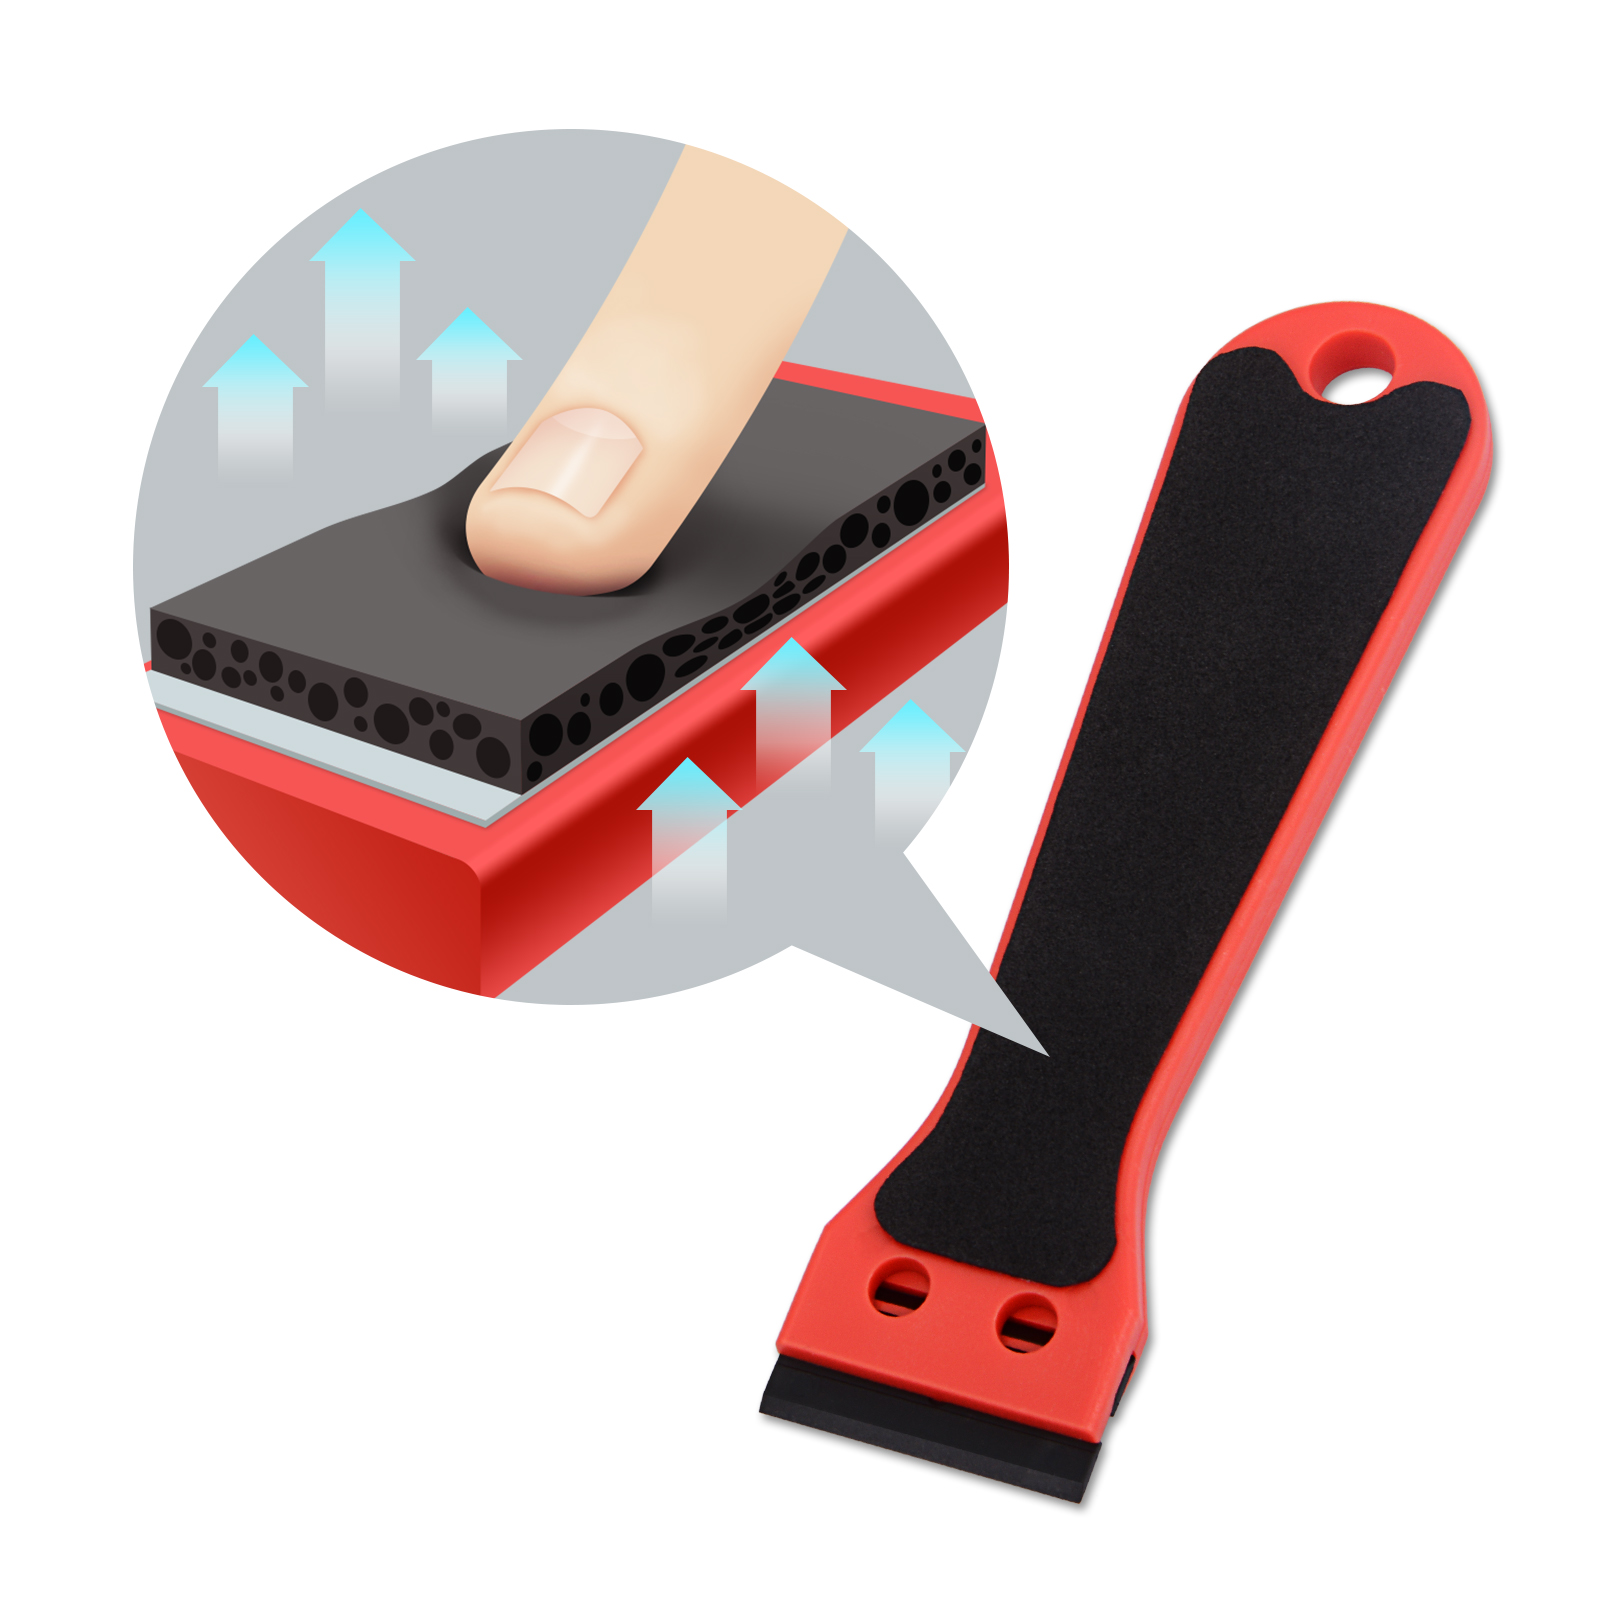 FOSHIO Vinyl Wrap Car Sticker Remover Razor Scraper for Oven Ceramic Window Glass Cleaning Carbon Fiber Wrapping Tool Squeegee(China)